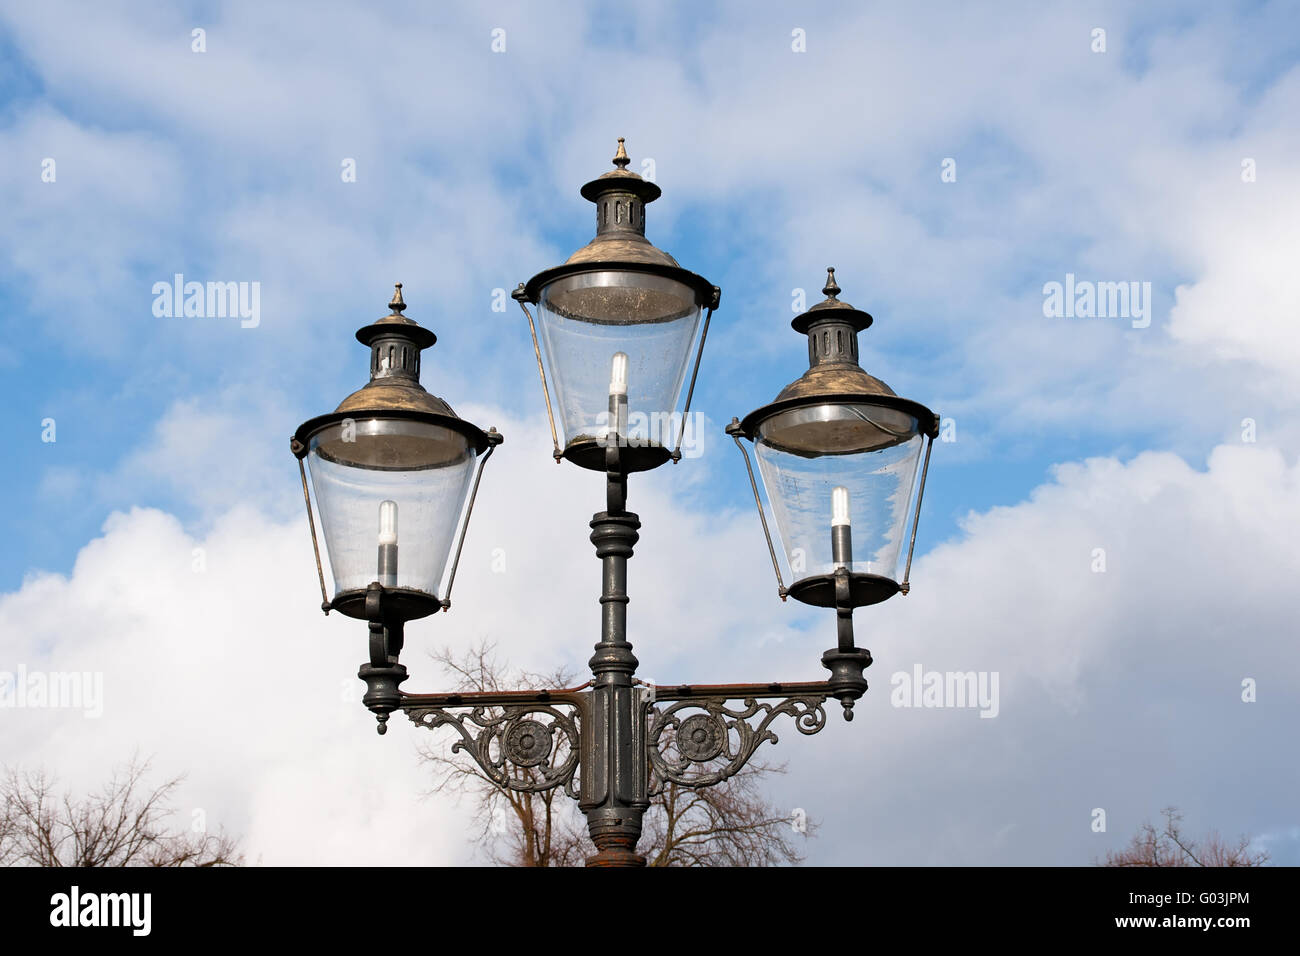 Lantern in the castle park of Muenster, Germany - Stock Image